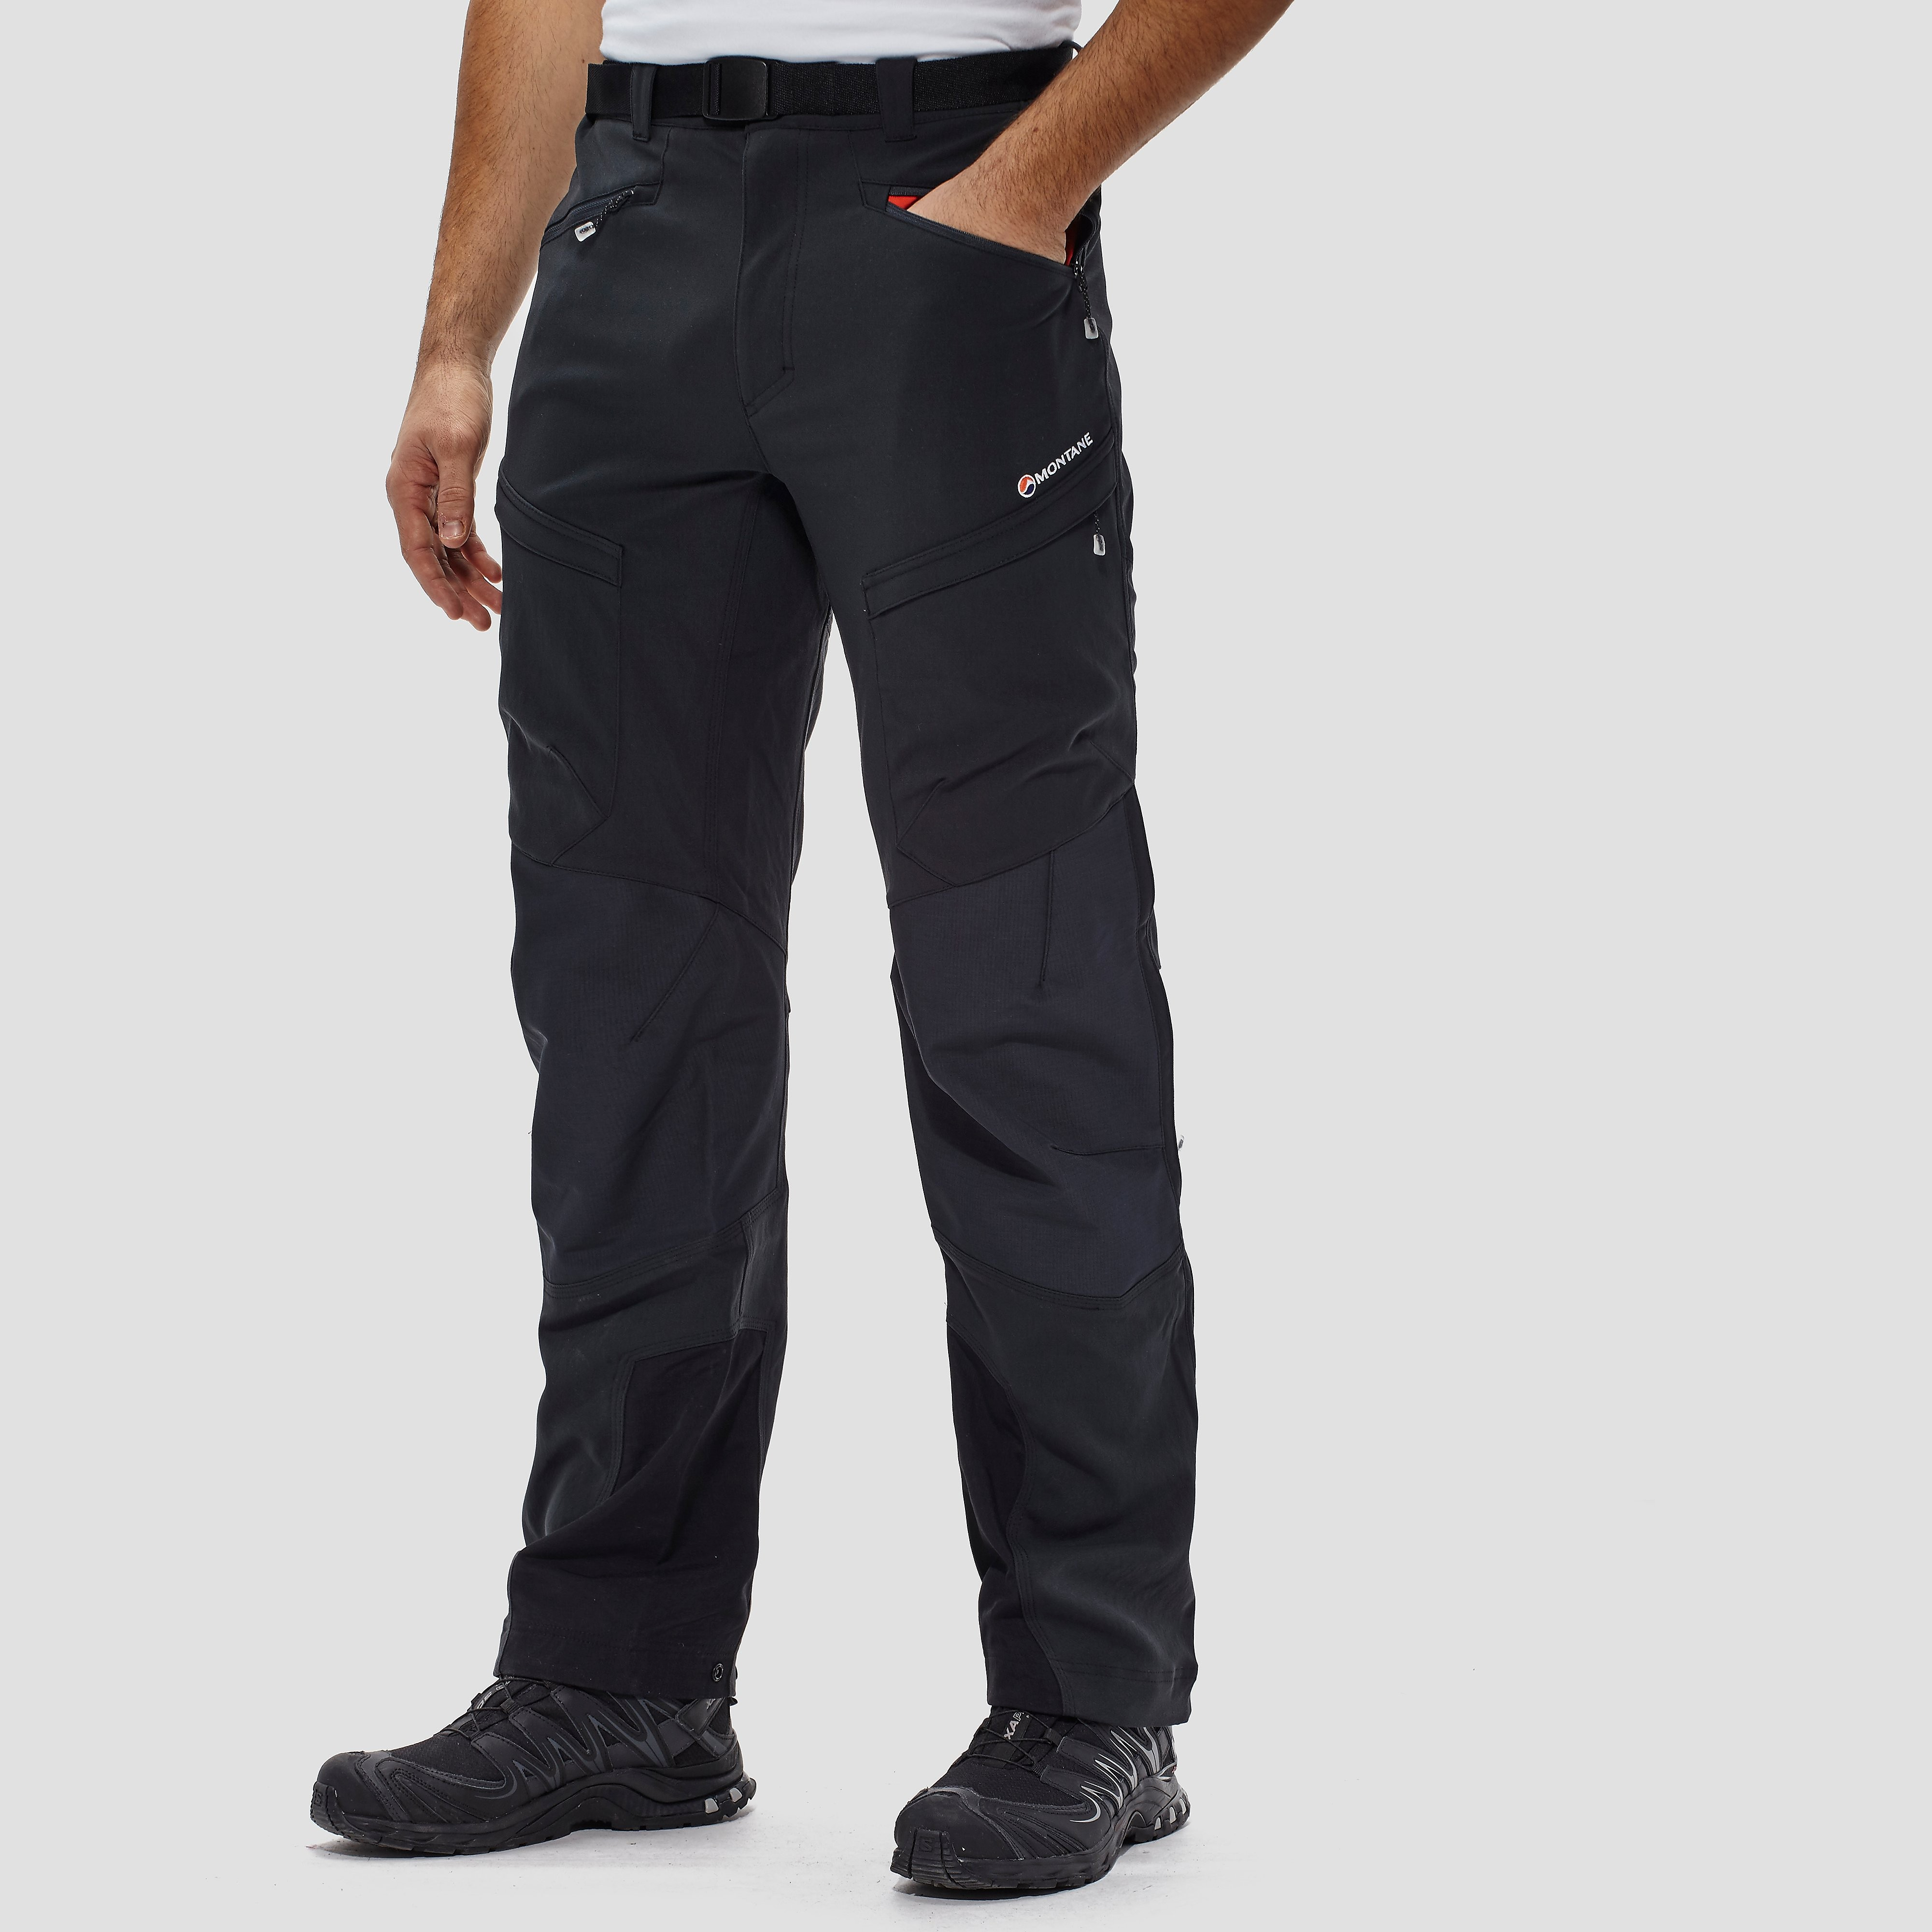 Montane Montane Super Terra Men's Pants